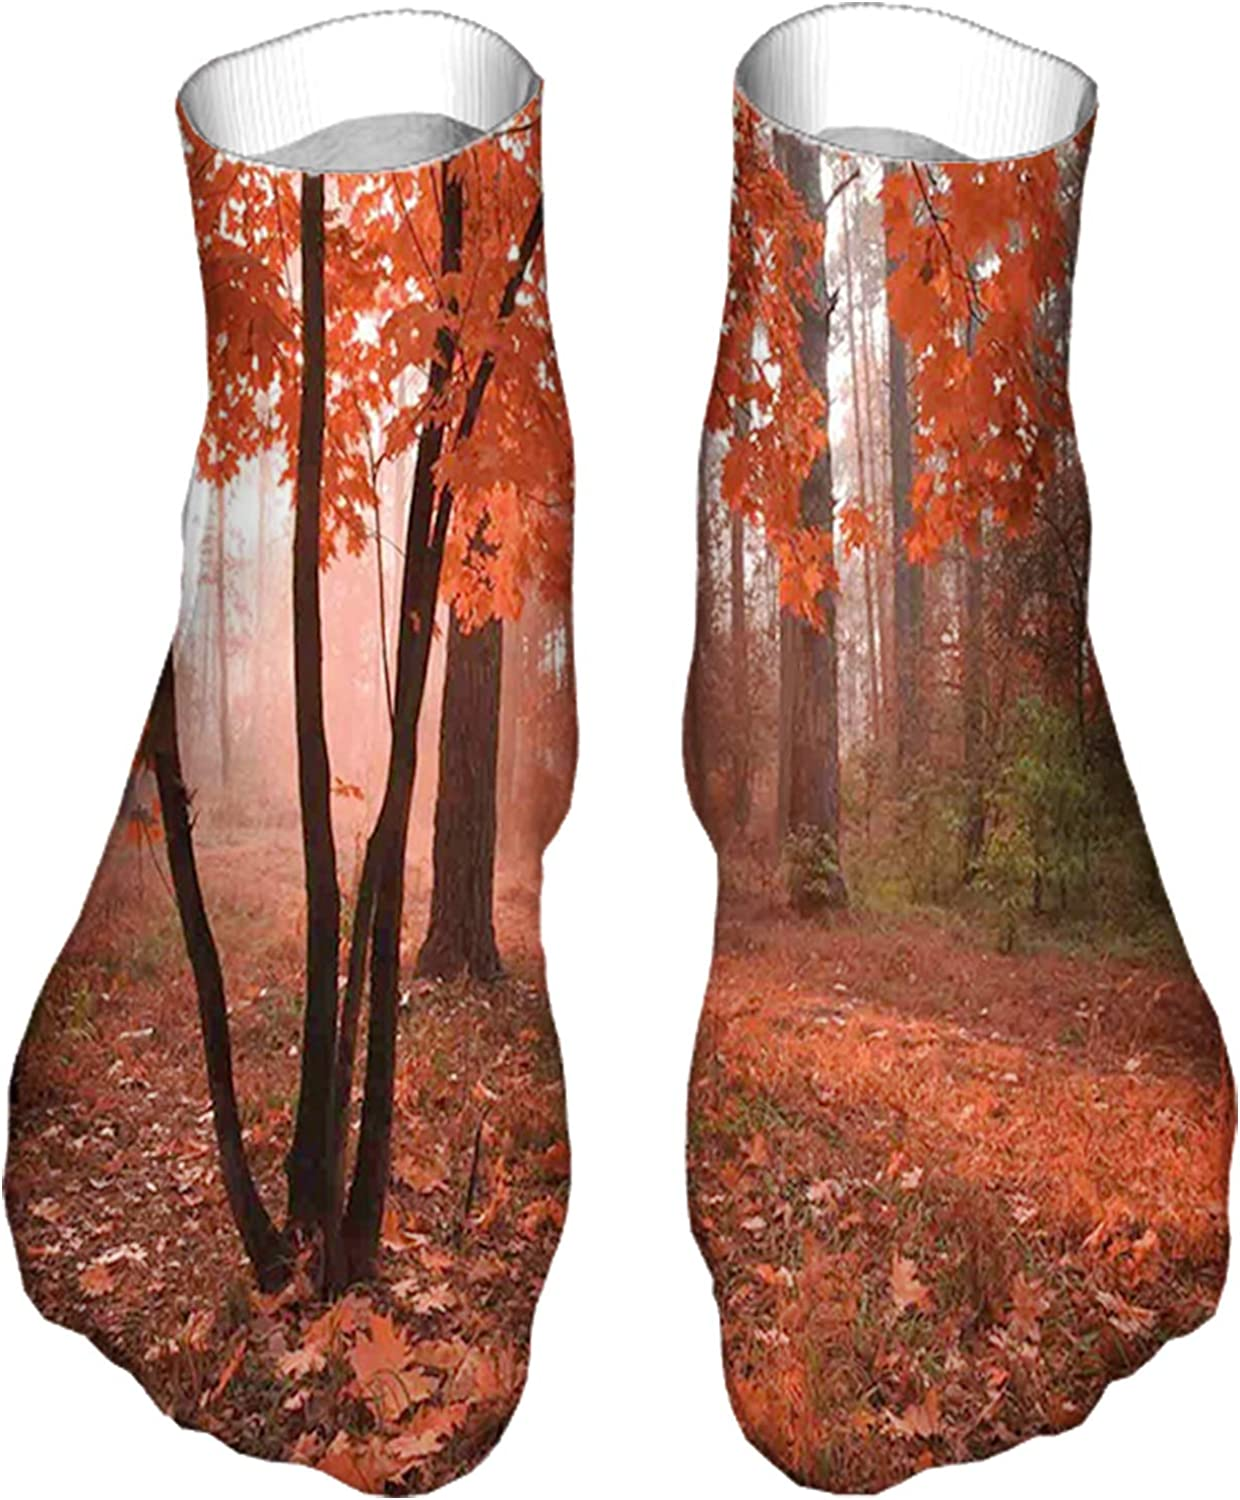 Women's Colorful Patterned Unisex Low Cut/No Show Socks,Misty Forest with Leaves from Deciduous Seasonal Trees Warm